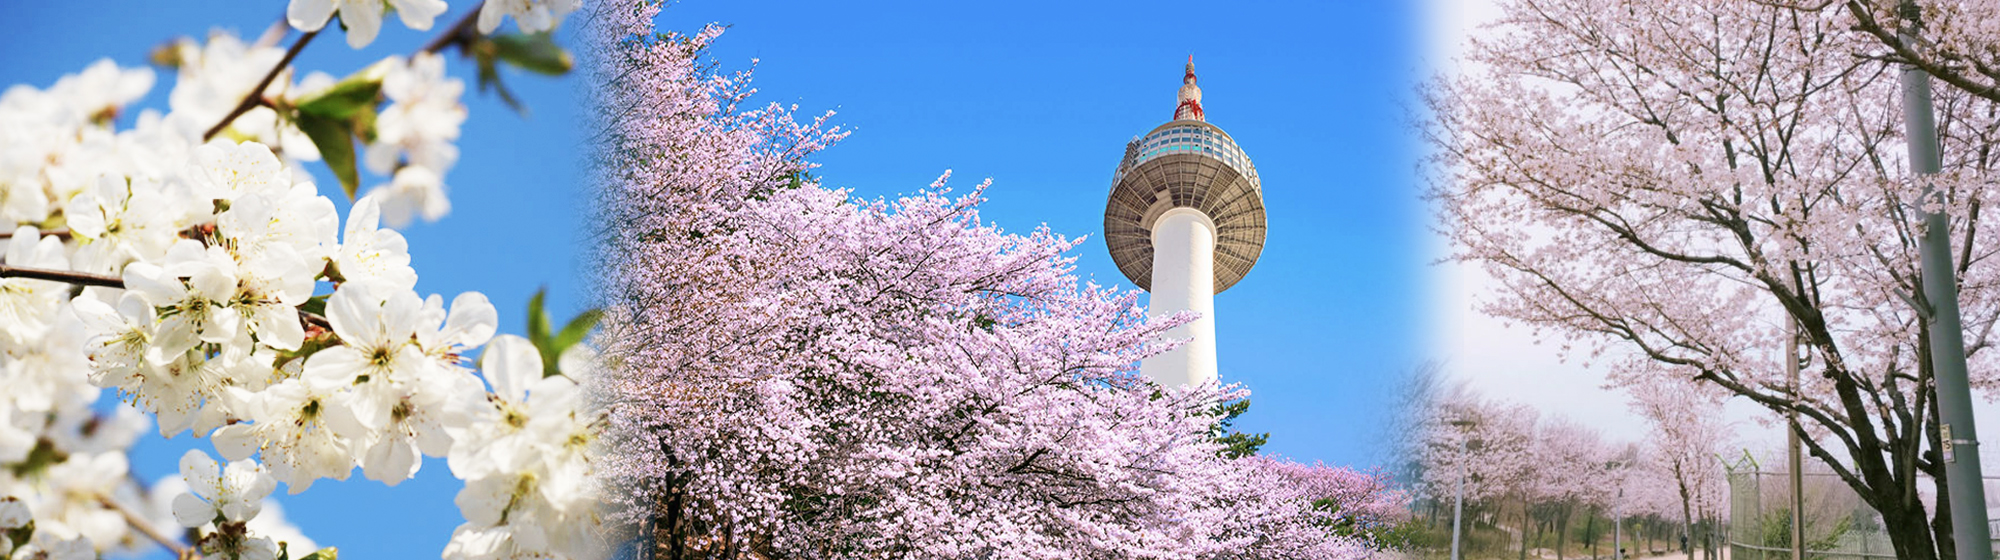 2020 The best of Korea Spring Cherry Blossom 1day shuttle bus tour – Seoul and around Seoul (Apr 6 – 15) | KoreaTravelEasy